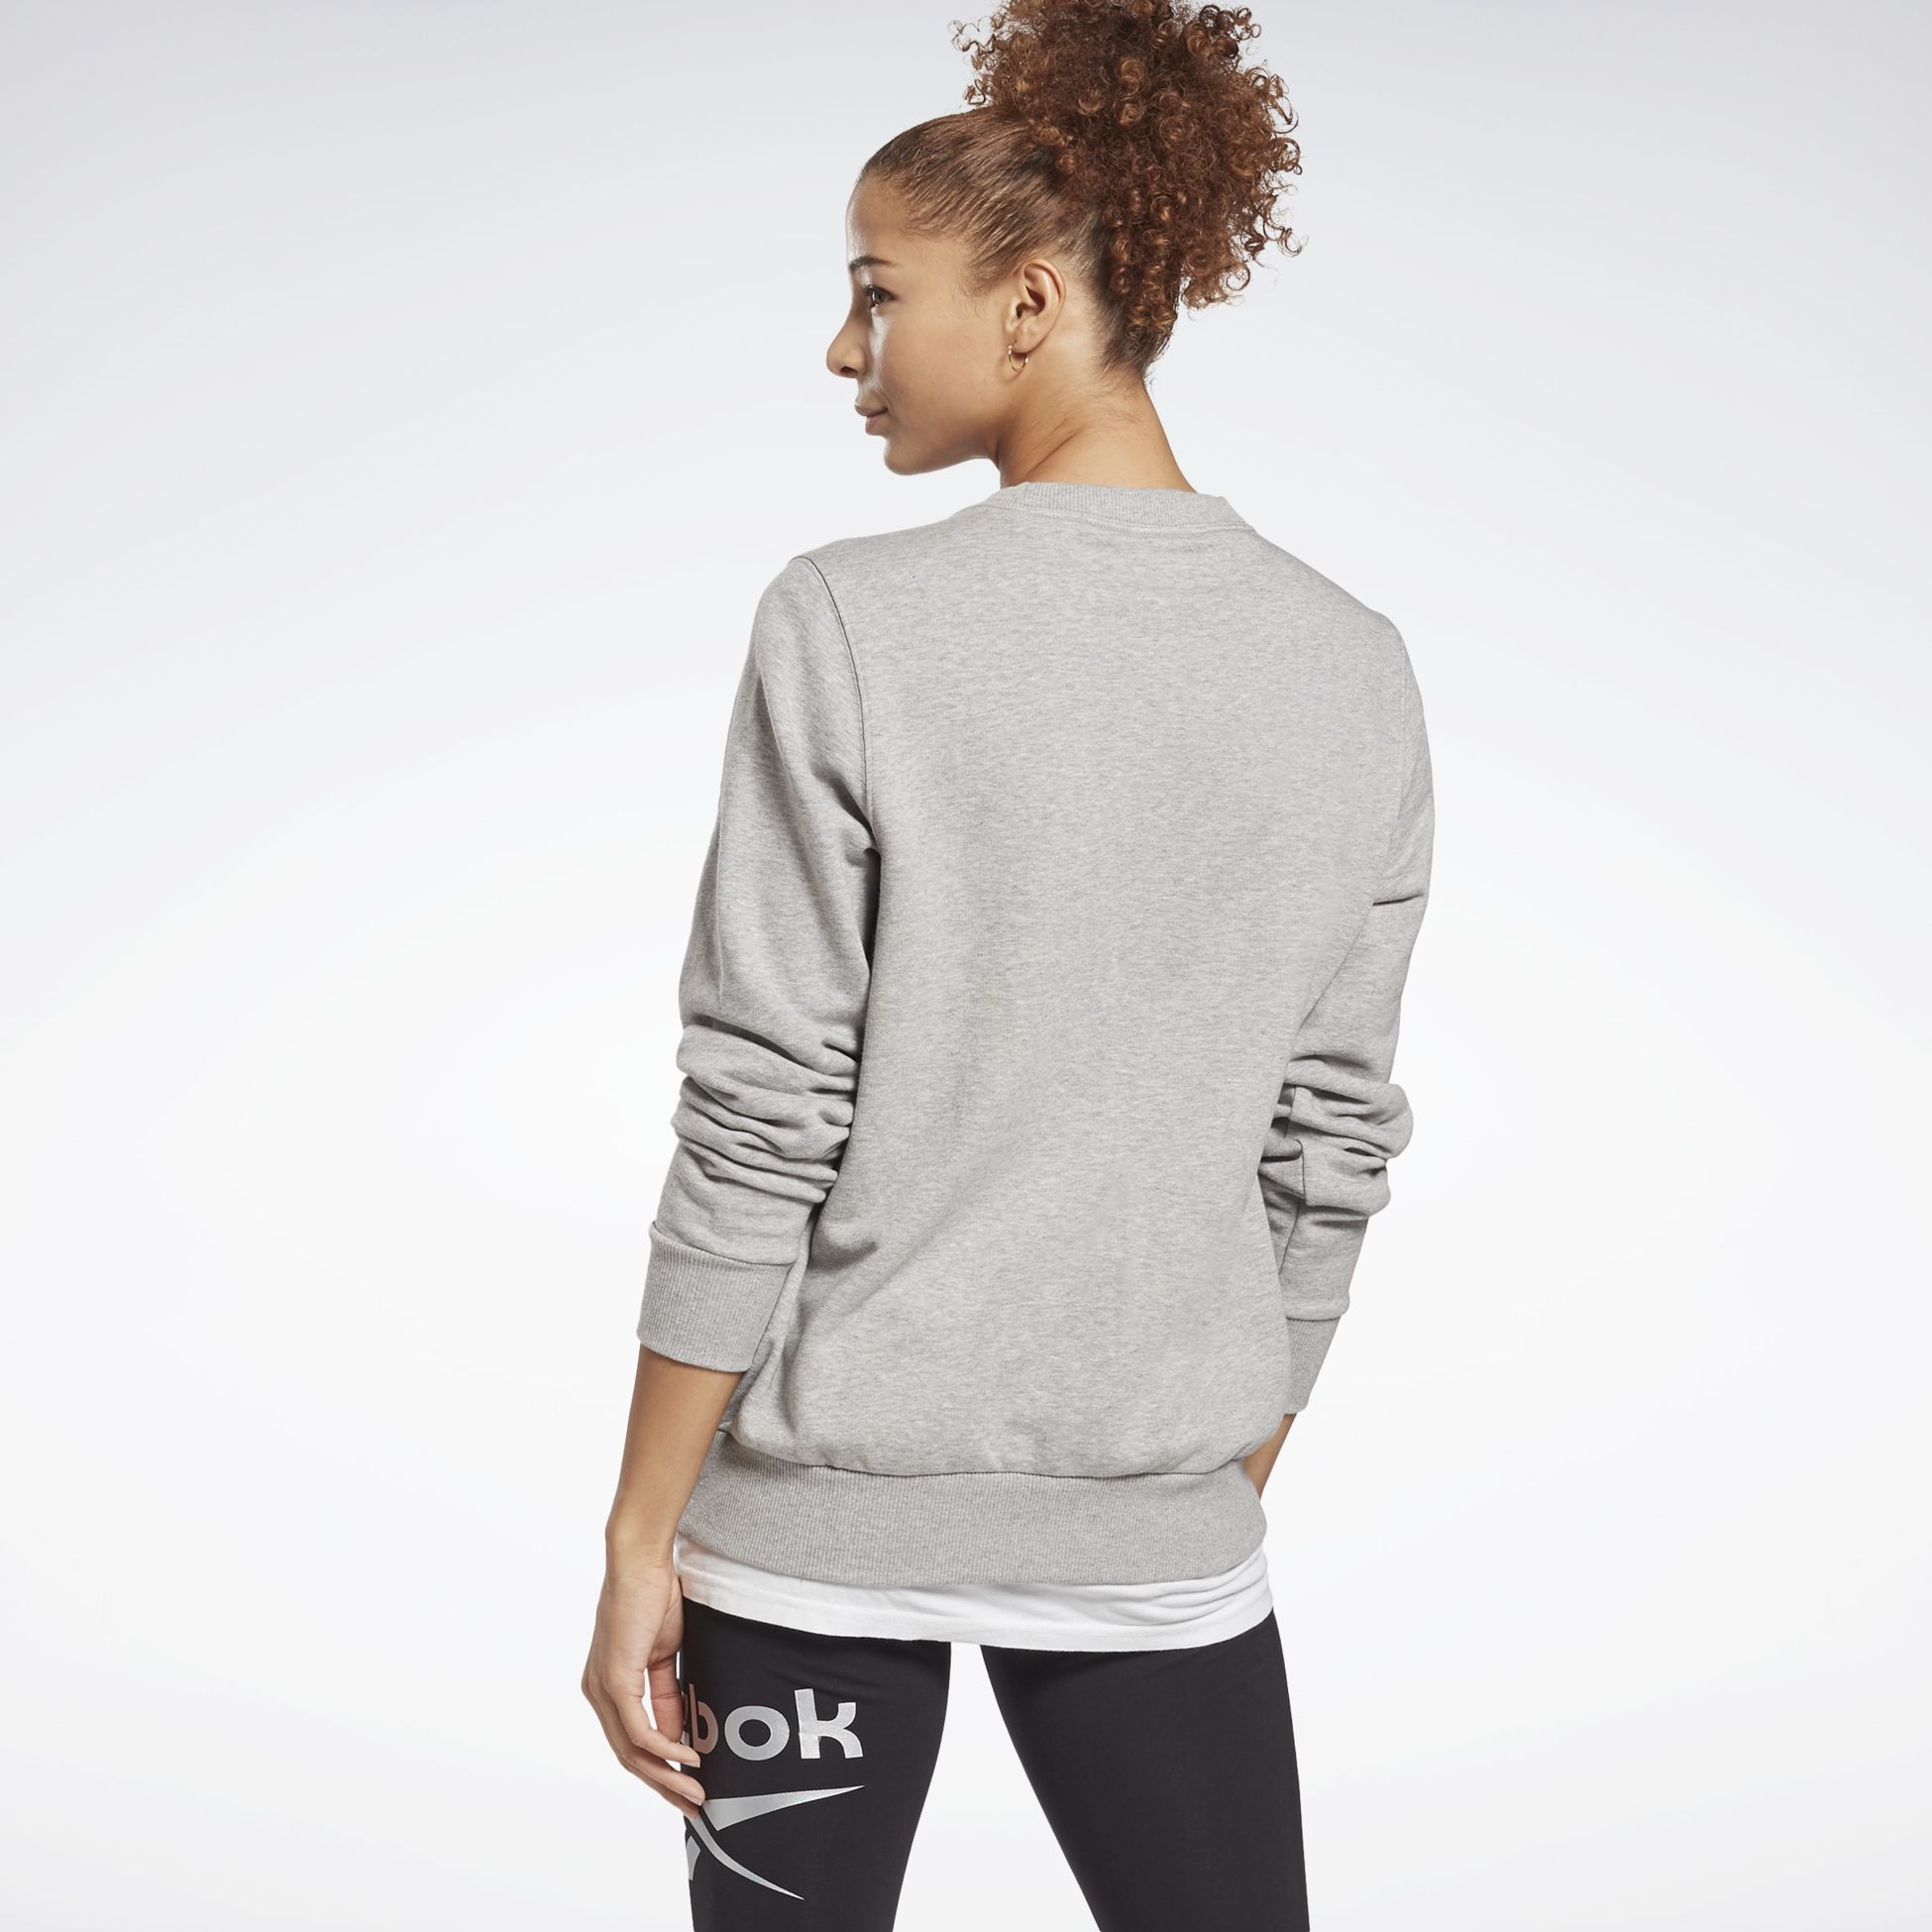 356159105101, Identity Logo French Terry Crew Sweatshirt, REEBOK, Detail